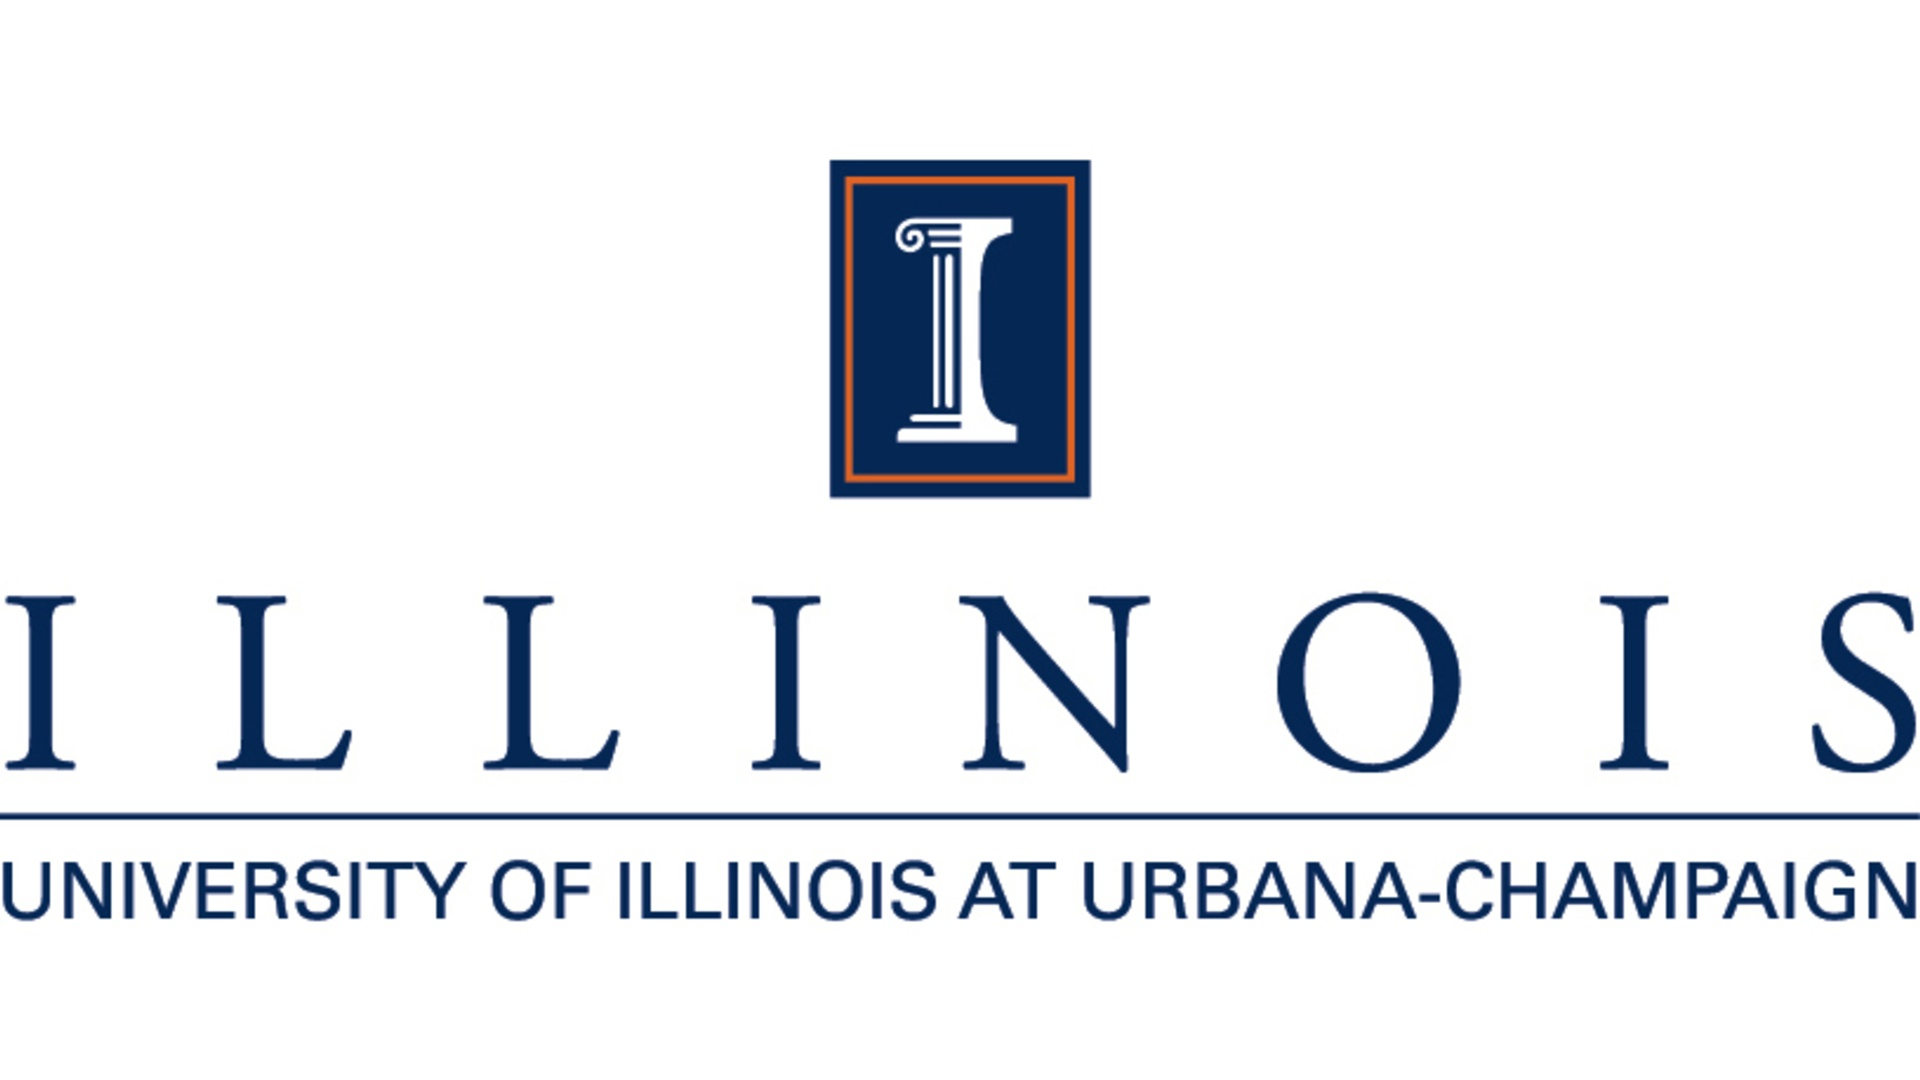 Research Director of the Center for Children's Books at the University of Illinois at Urbana-Champaign